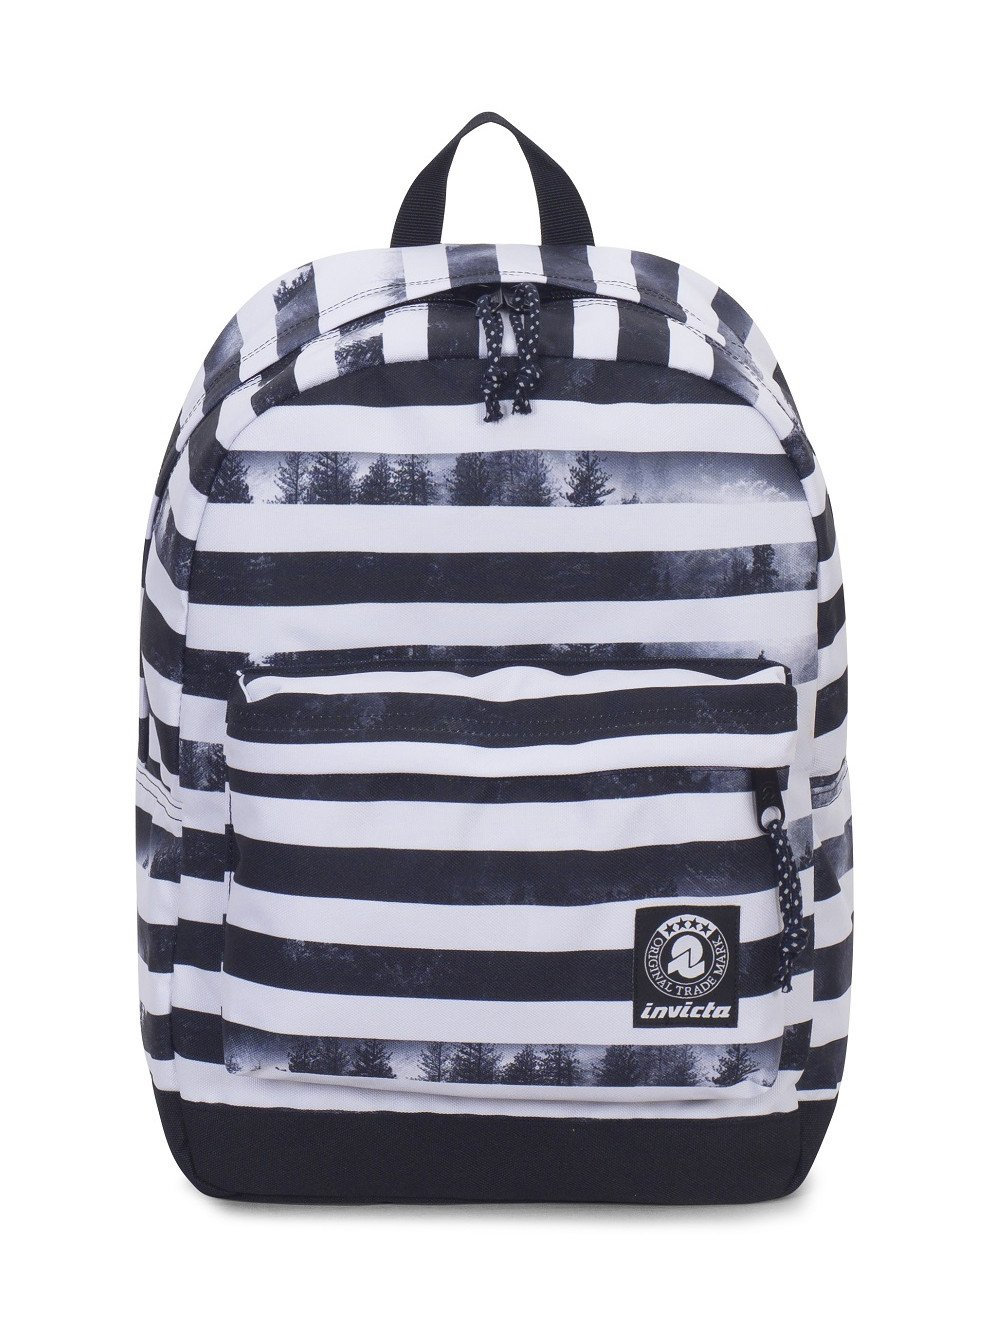 ZAINO INVICTA CARLSON FANTASY BLACK STRIPED FOREST